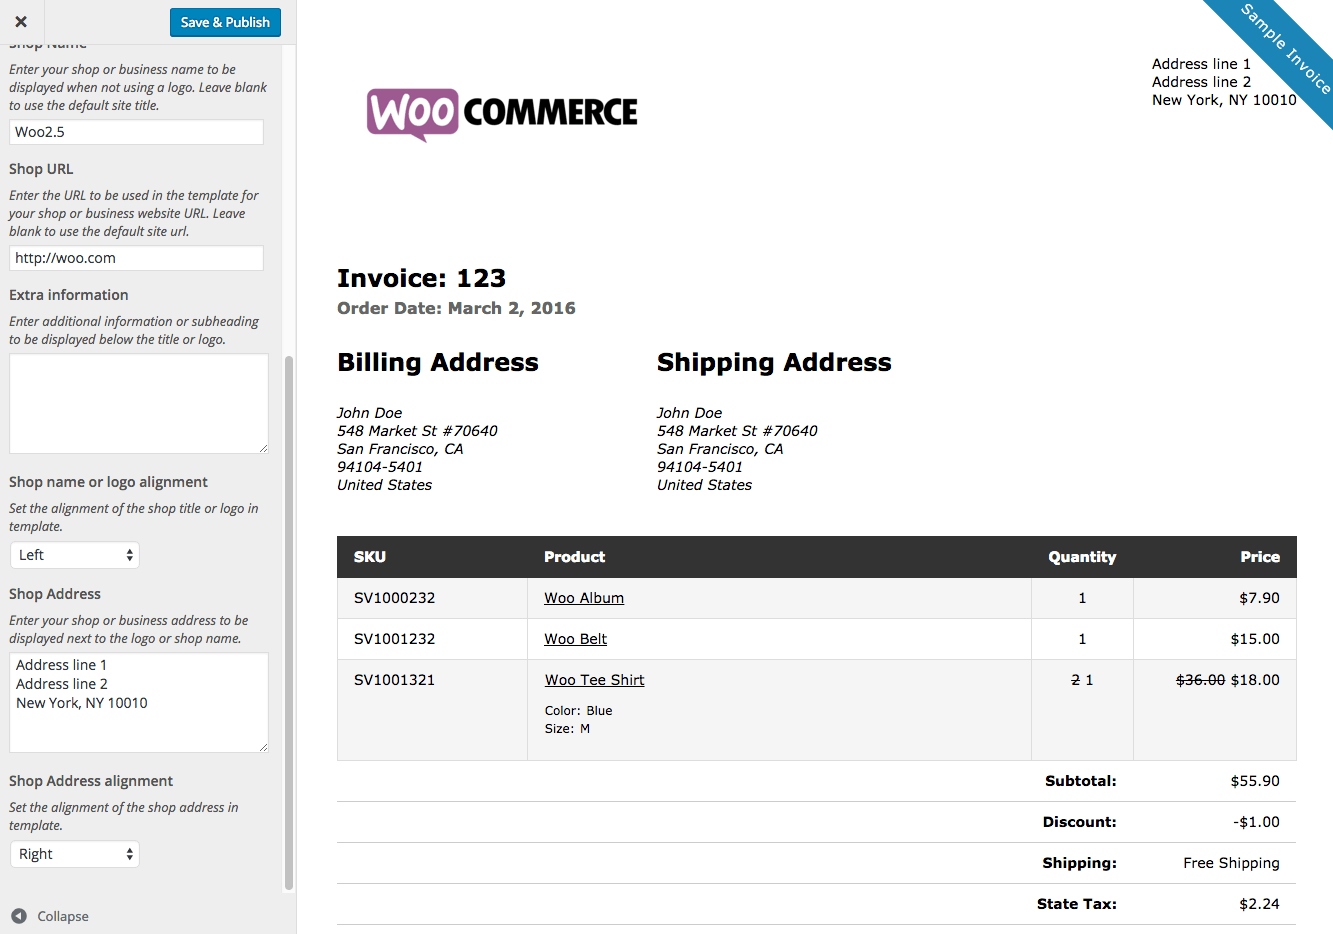 Sandiegolocksmithsus  Personable Woocommerce Print Invoices Amp Packing Lists  Woocommerce Docs With Licious Woocommerce Print Invoices  Packing Lists Customizer With Beauteous Paypal Fees Invoice Also Bmw Invoice In Addition Auto Invoice Pricing And Free Invoice Sample As Well As Lps Invoice Management Login Additionally Gnucash Invoice From Docswoocommercecom With Sandiegolocksmithsus  Licious Woocommerce Print Invoices Amp Packing Lists  Woocommerce Docs With Beauteous Woocommerce Print Invoices  Packing Lists Customizer And Personable Paypal Fees Invoice Also Bmw Invoice In Addition Auto Invoice Pricing From Docswoocommercecom